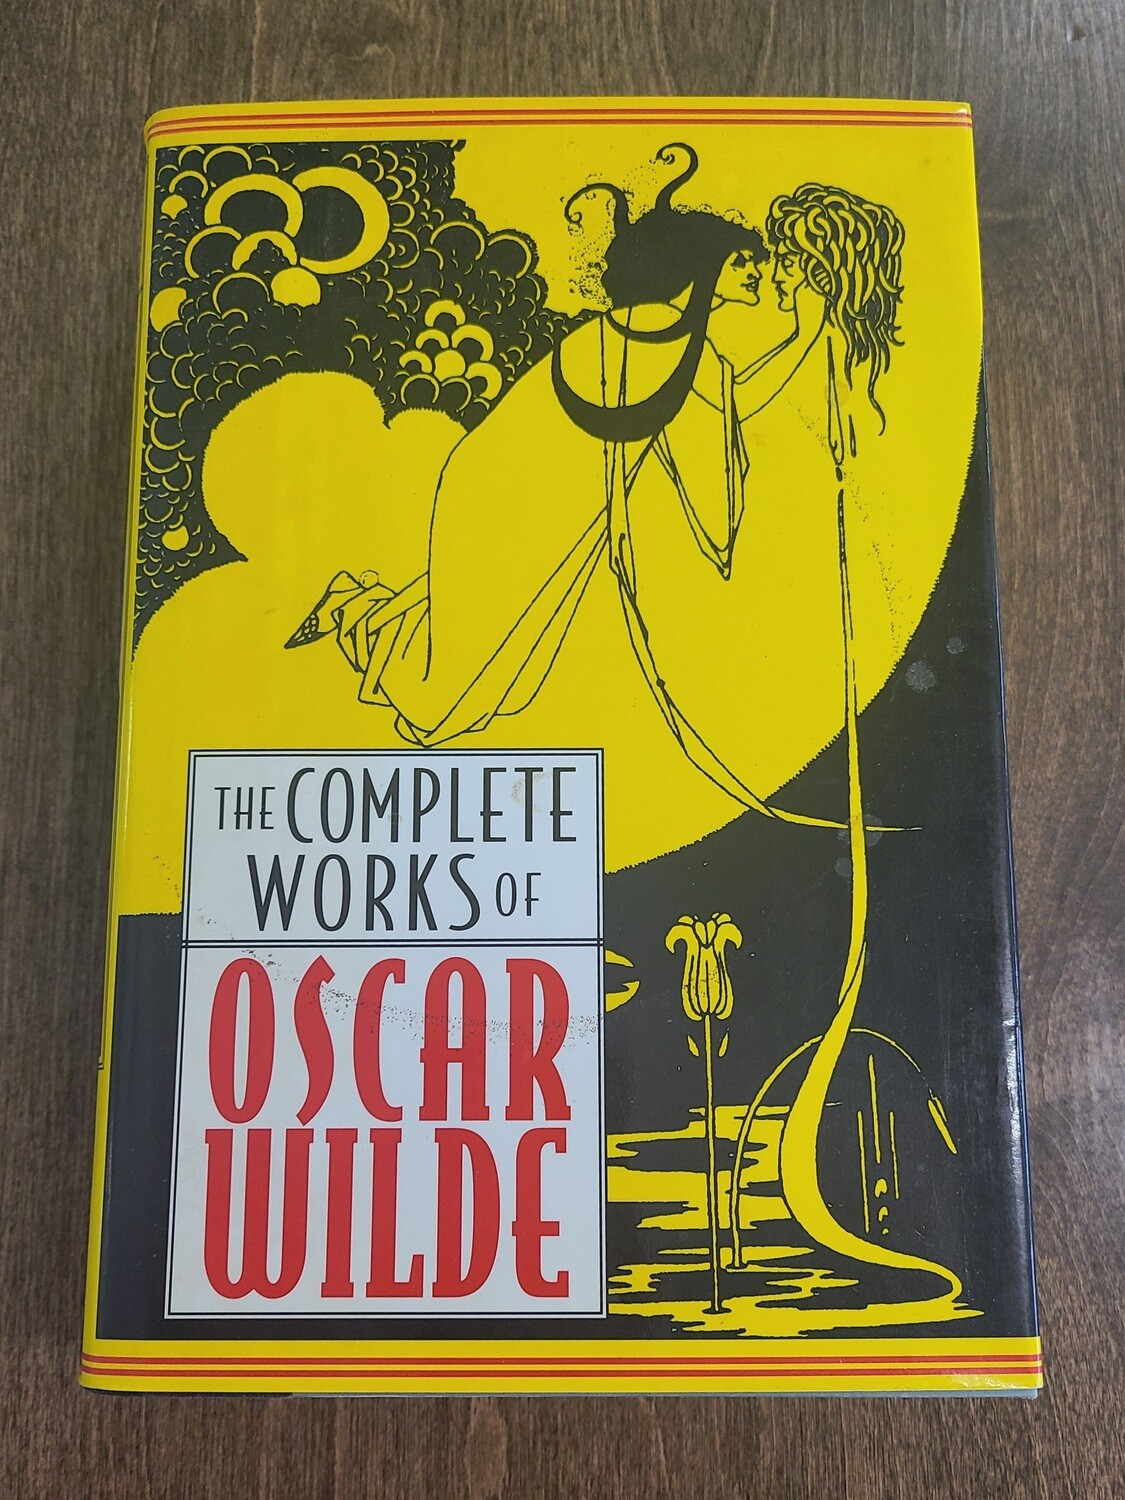 The Complete Works of Oscar Wilde by George Bernard Shaw